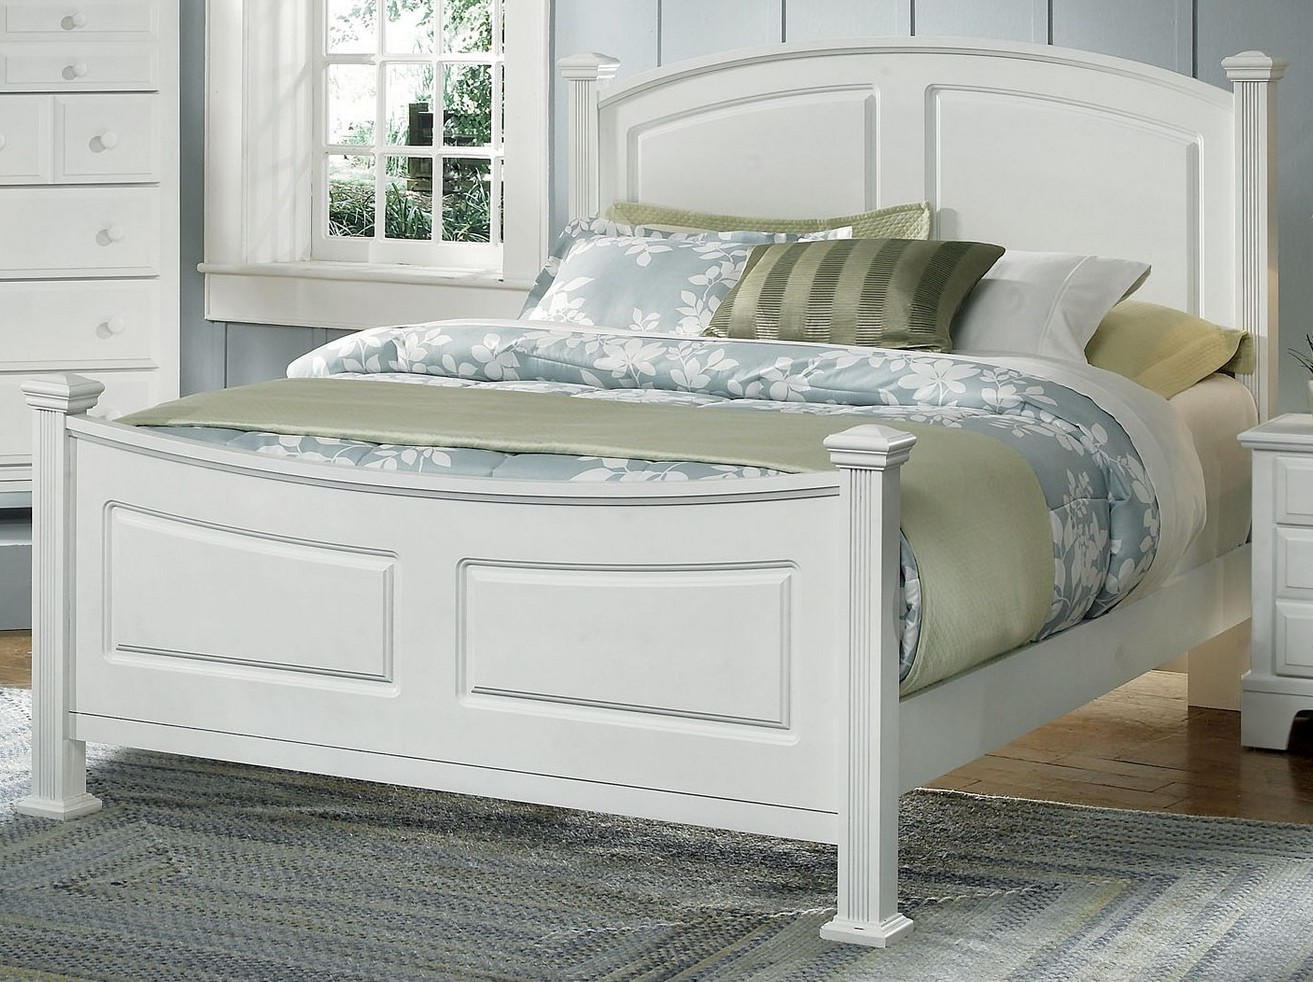 Vaughan Basset Hamilton Franklin Queen Panel Bed In Snow White